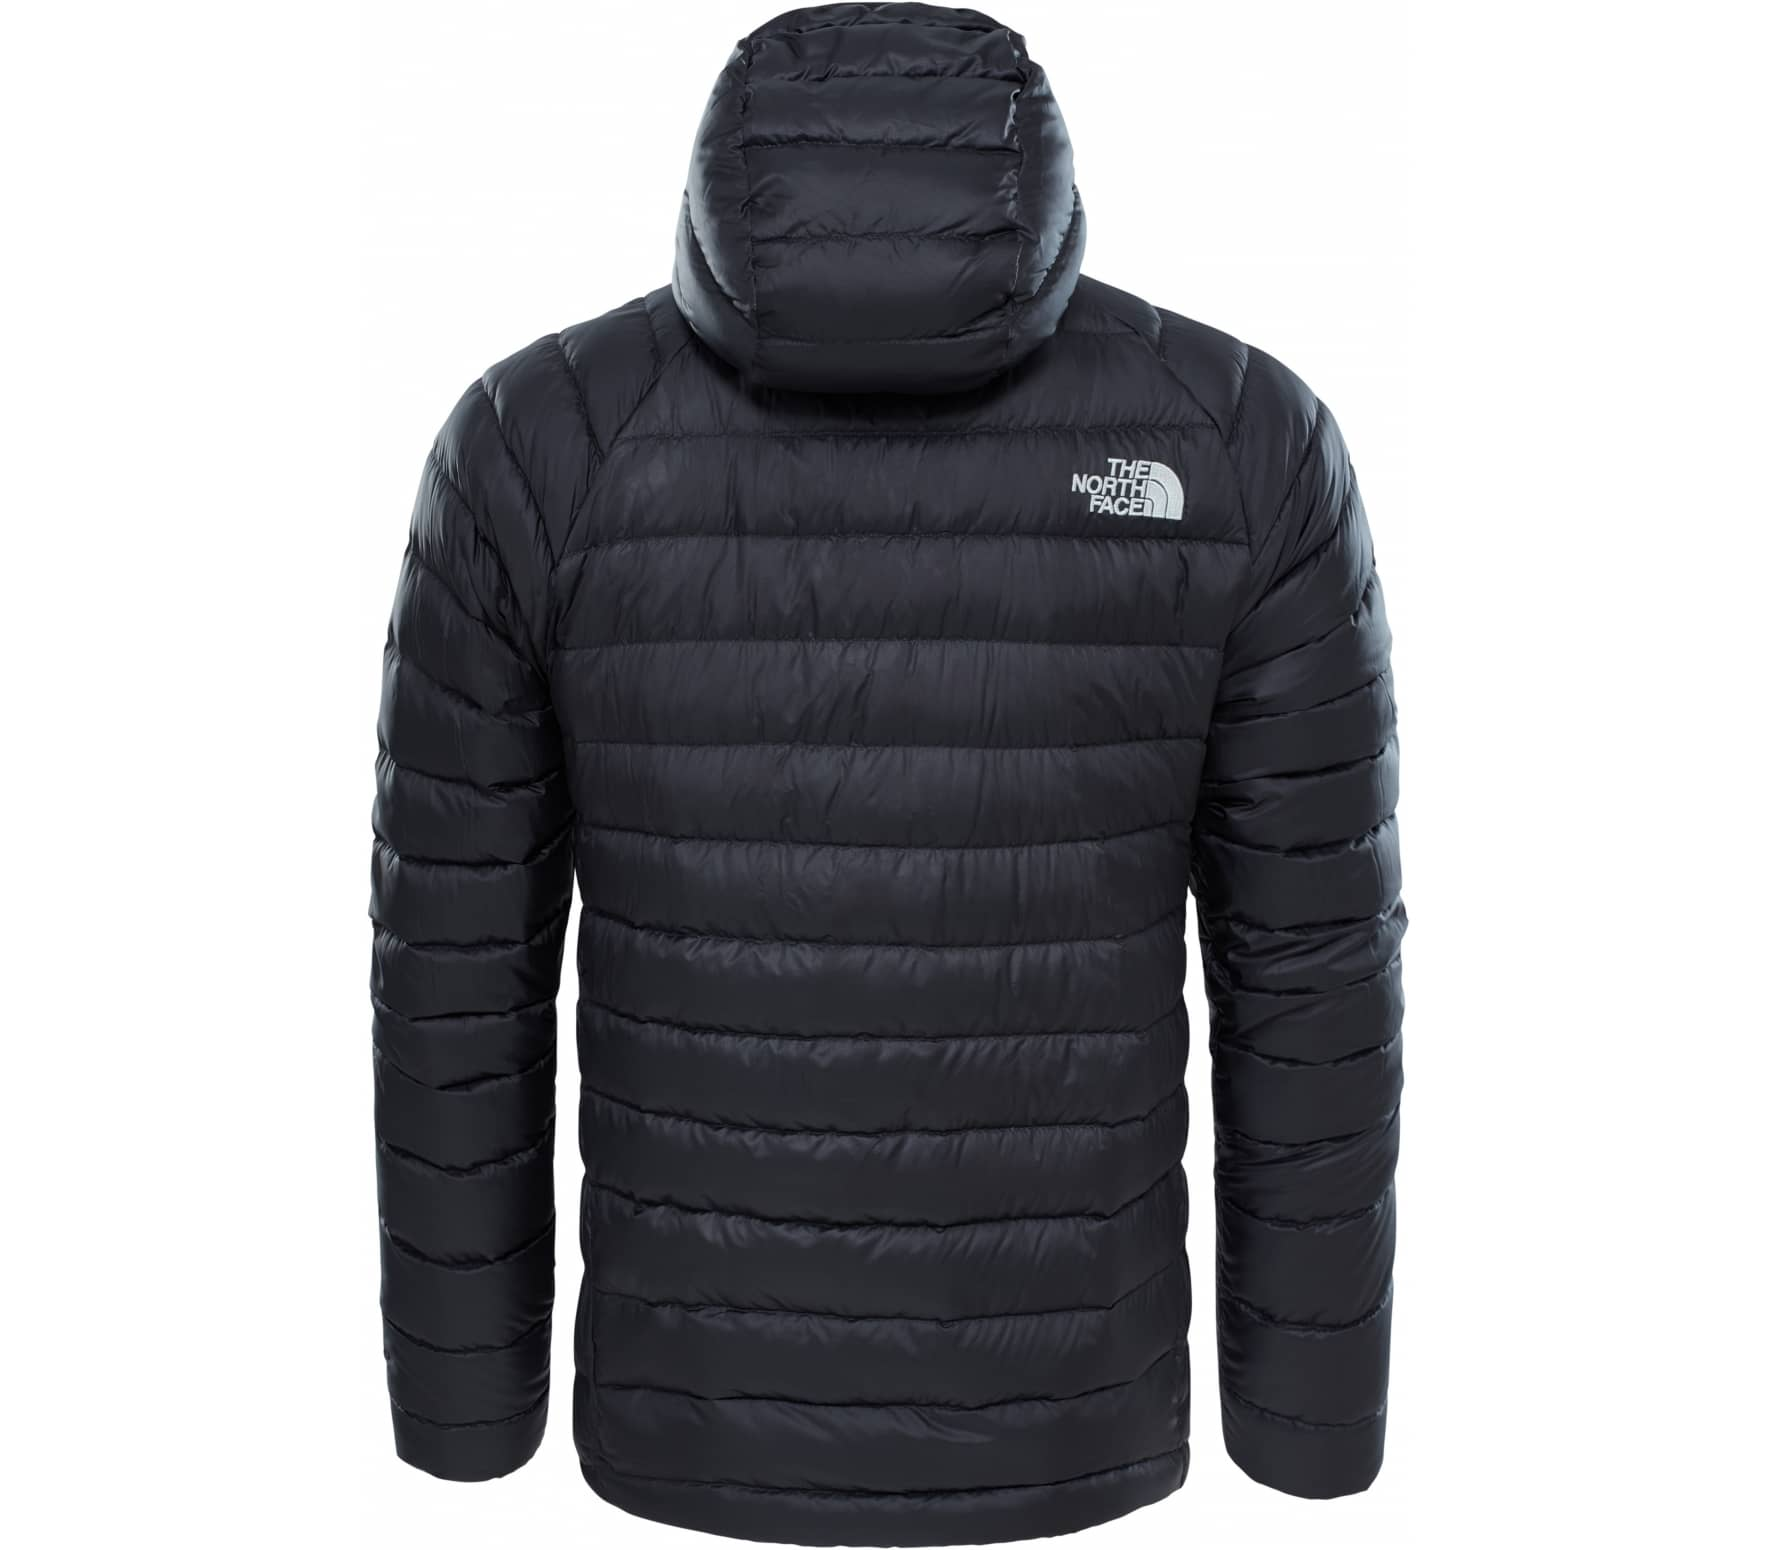 100% authentic 4026a 7e8eb The North Face - Trevail men's down jacket (black/black)